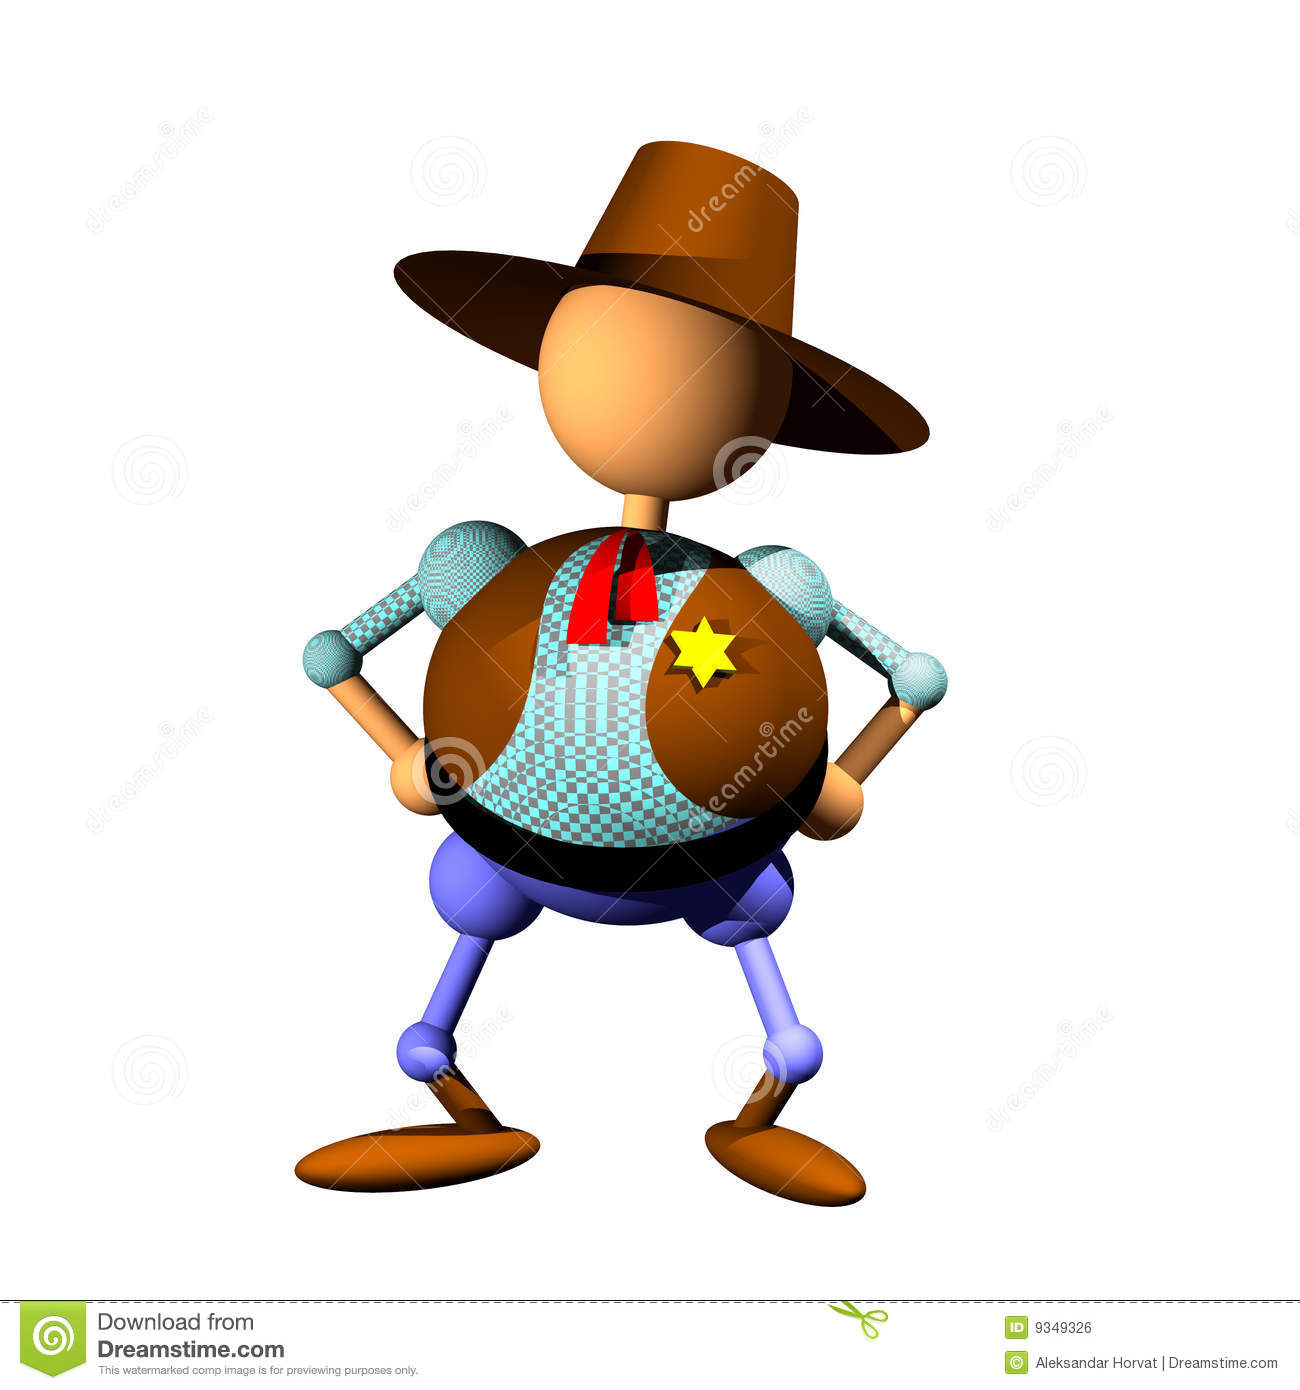 Sheriff Clipart Royalty Free Stock Image.